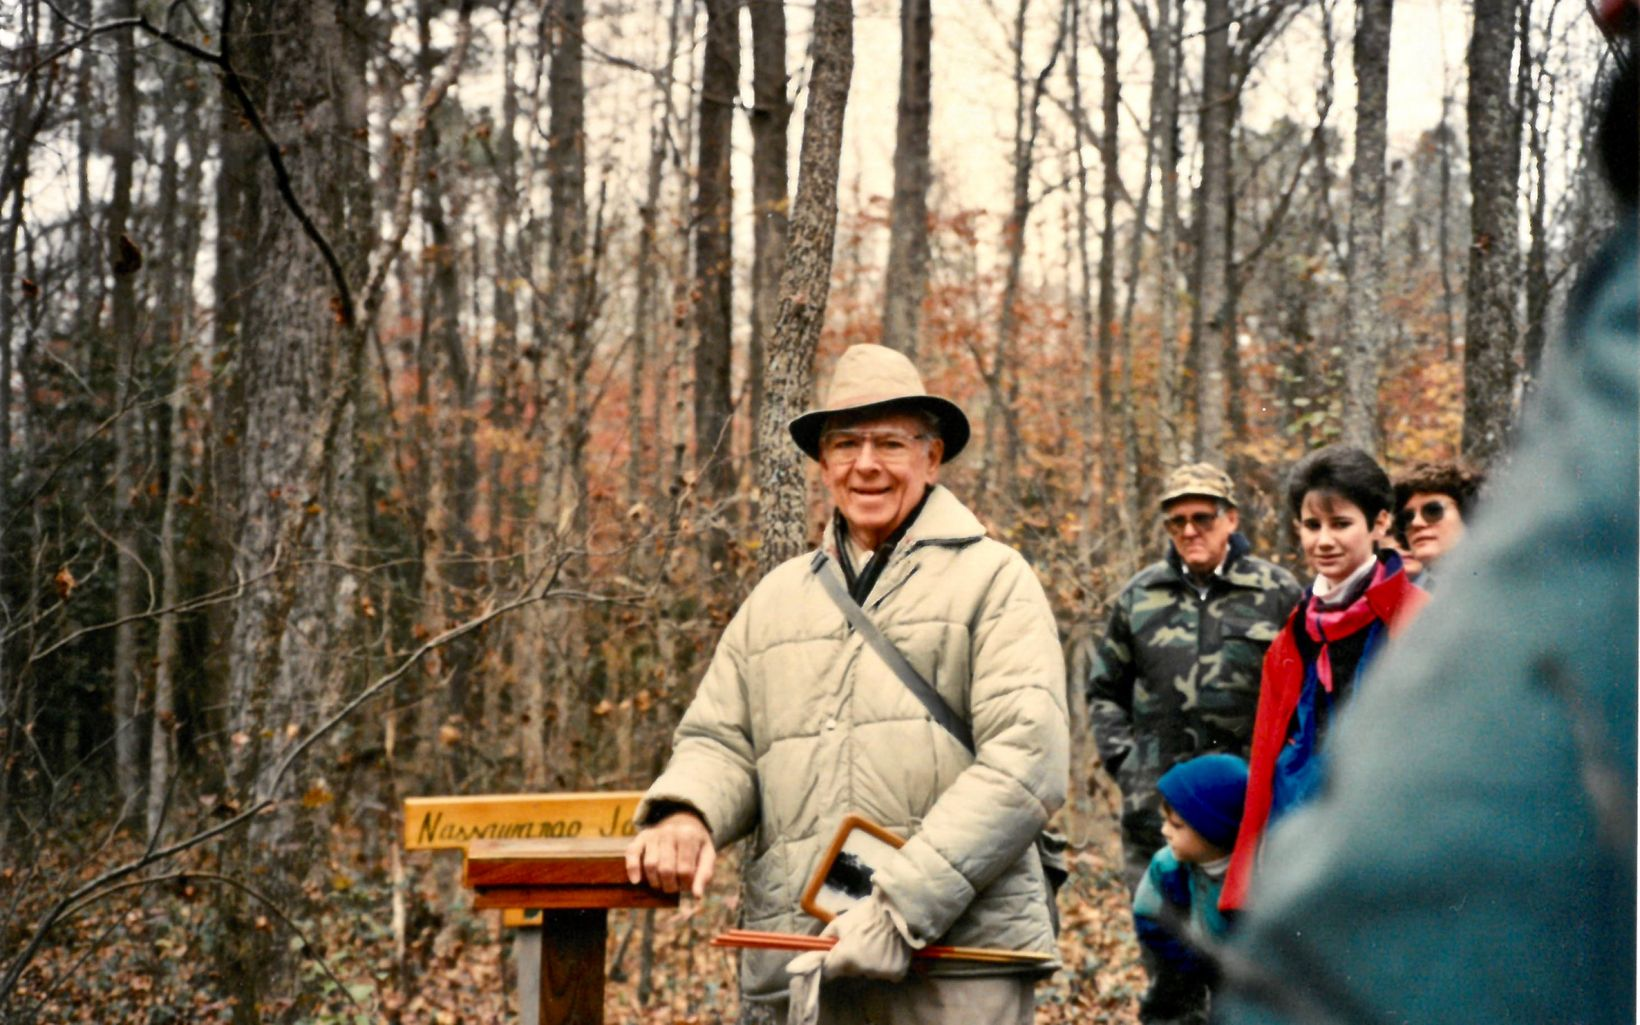 Joe Fehrer, Sr., at the dedication of the Nassawango Joe Trail, Nassawango Swamp Preserve, 1991.